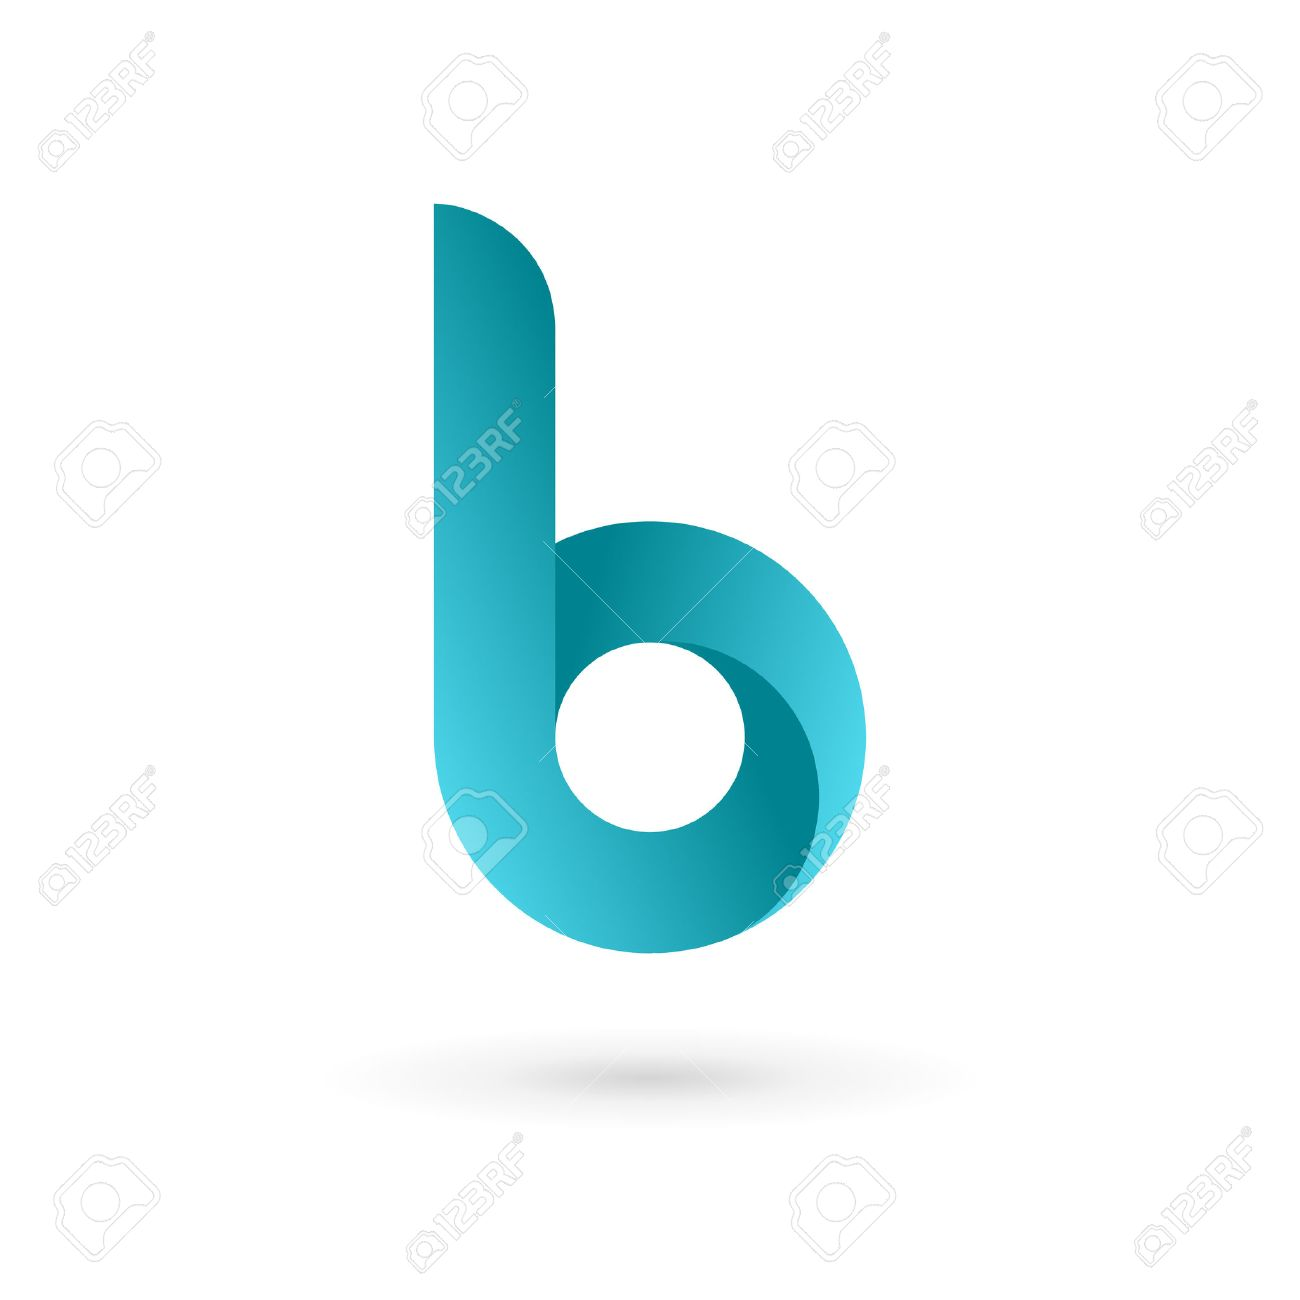 letter b logo icon design template elements vector color sign stock vector 32592492